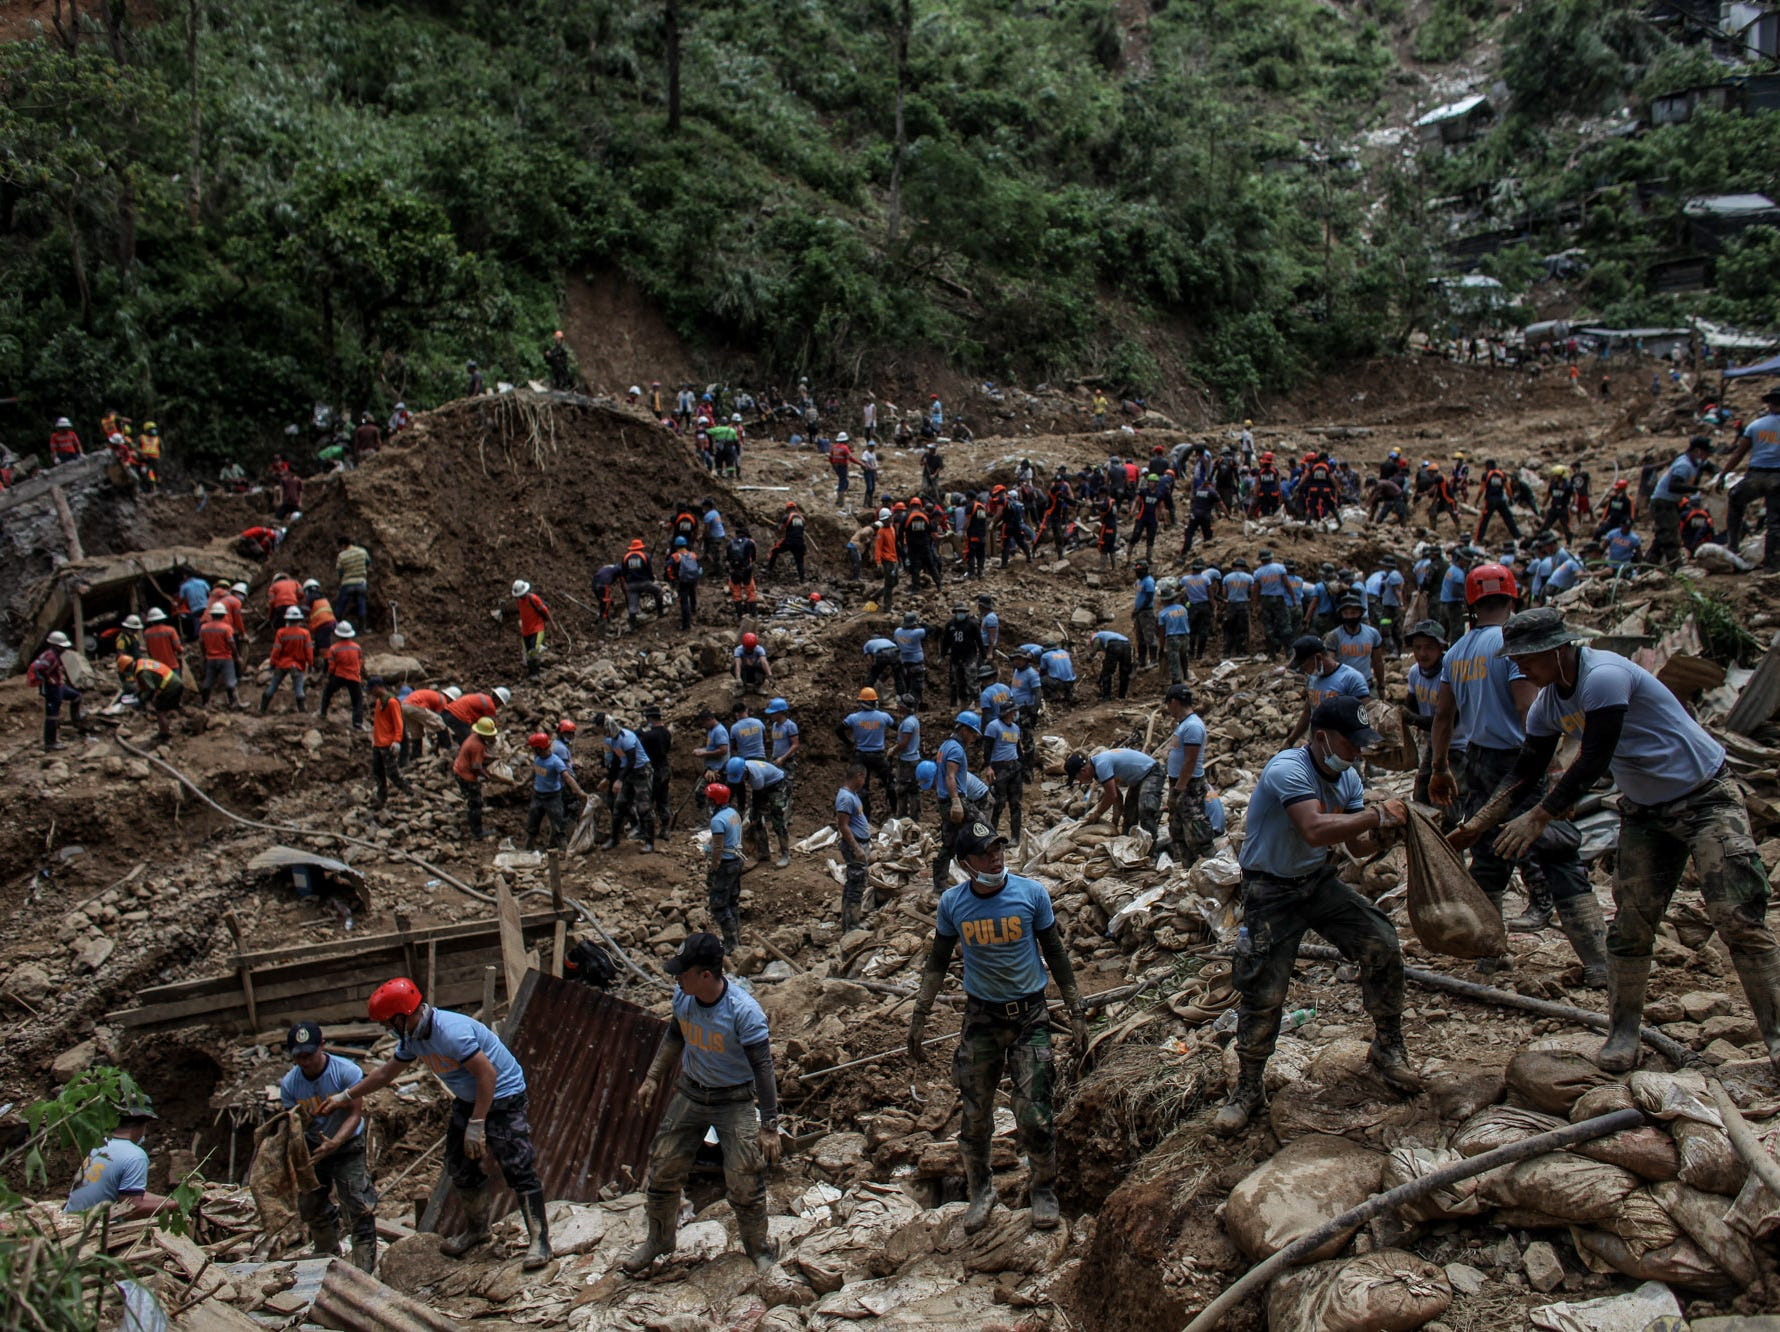 Filipino rescuers dig at the site where people were believed to have been buried by a landslide on Sept. 19, 2018 in Itogon, Benguet province, Philippines.